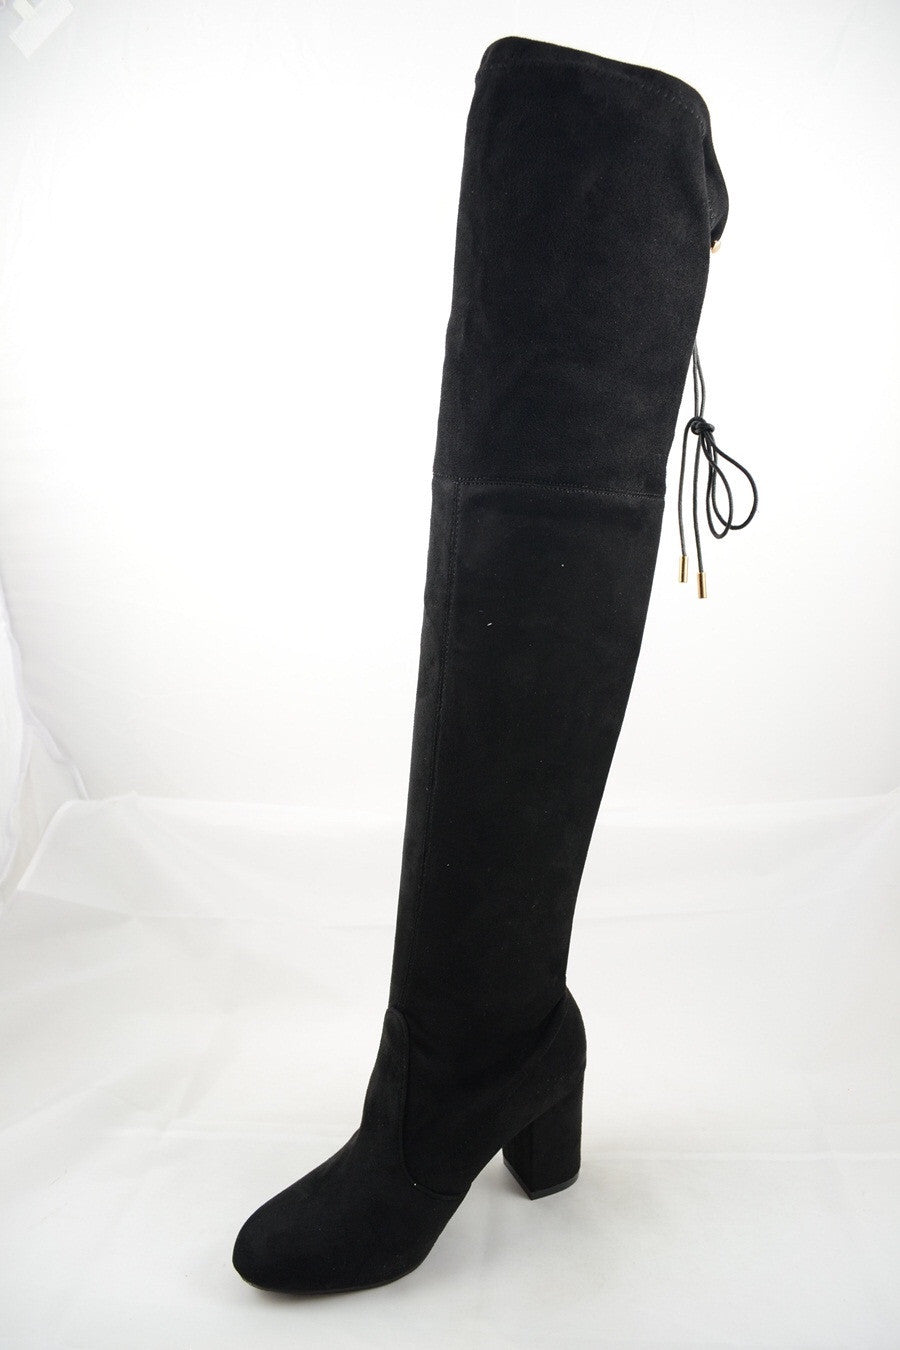 Bonita over the knee boot